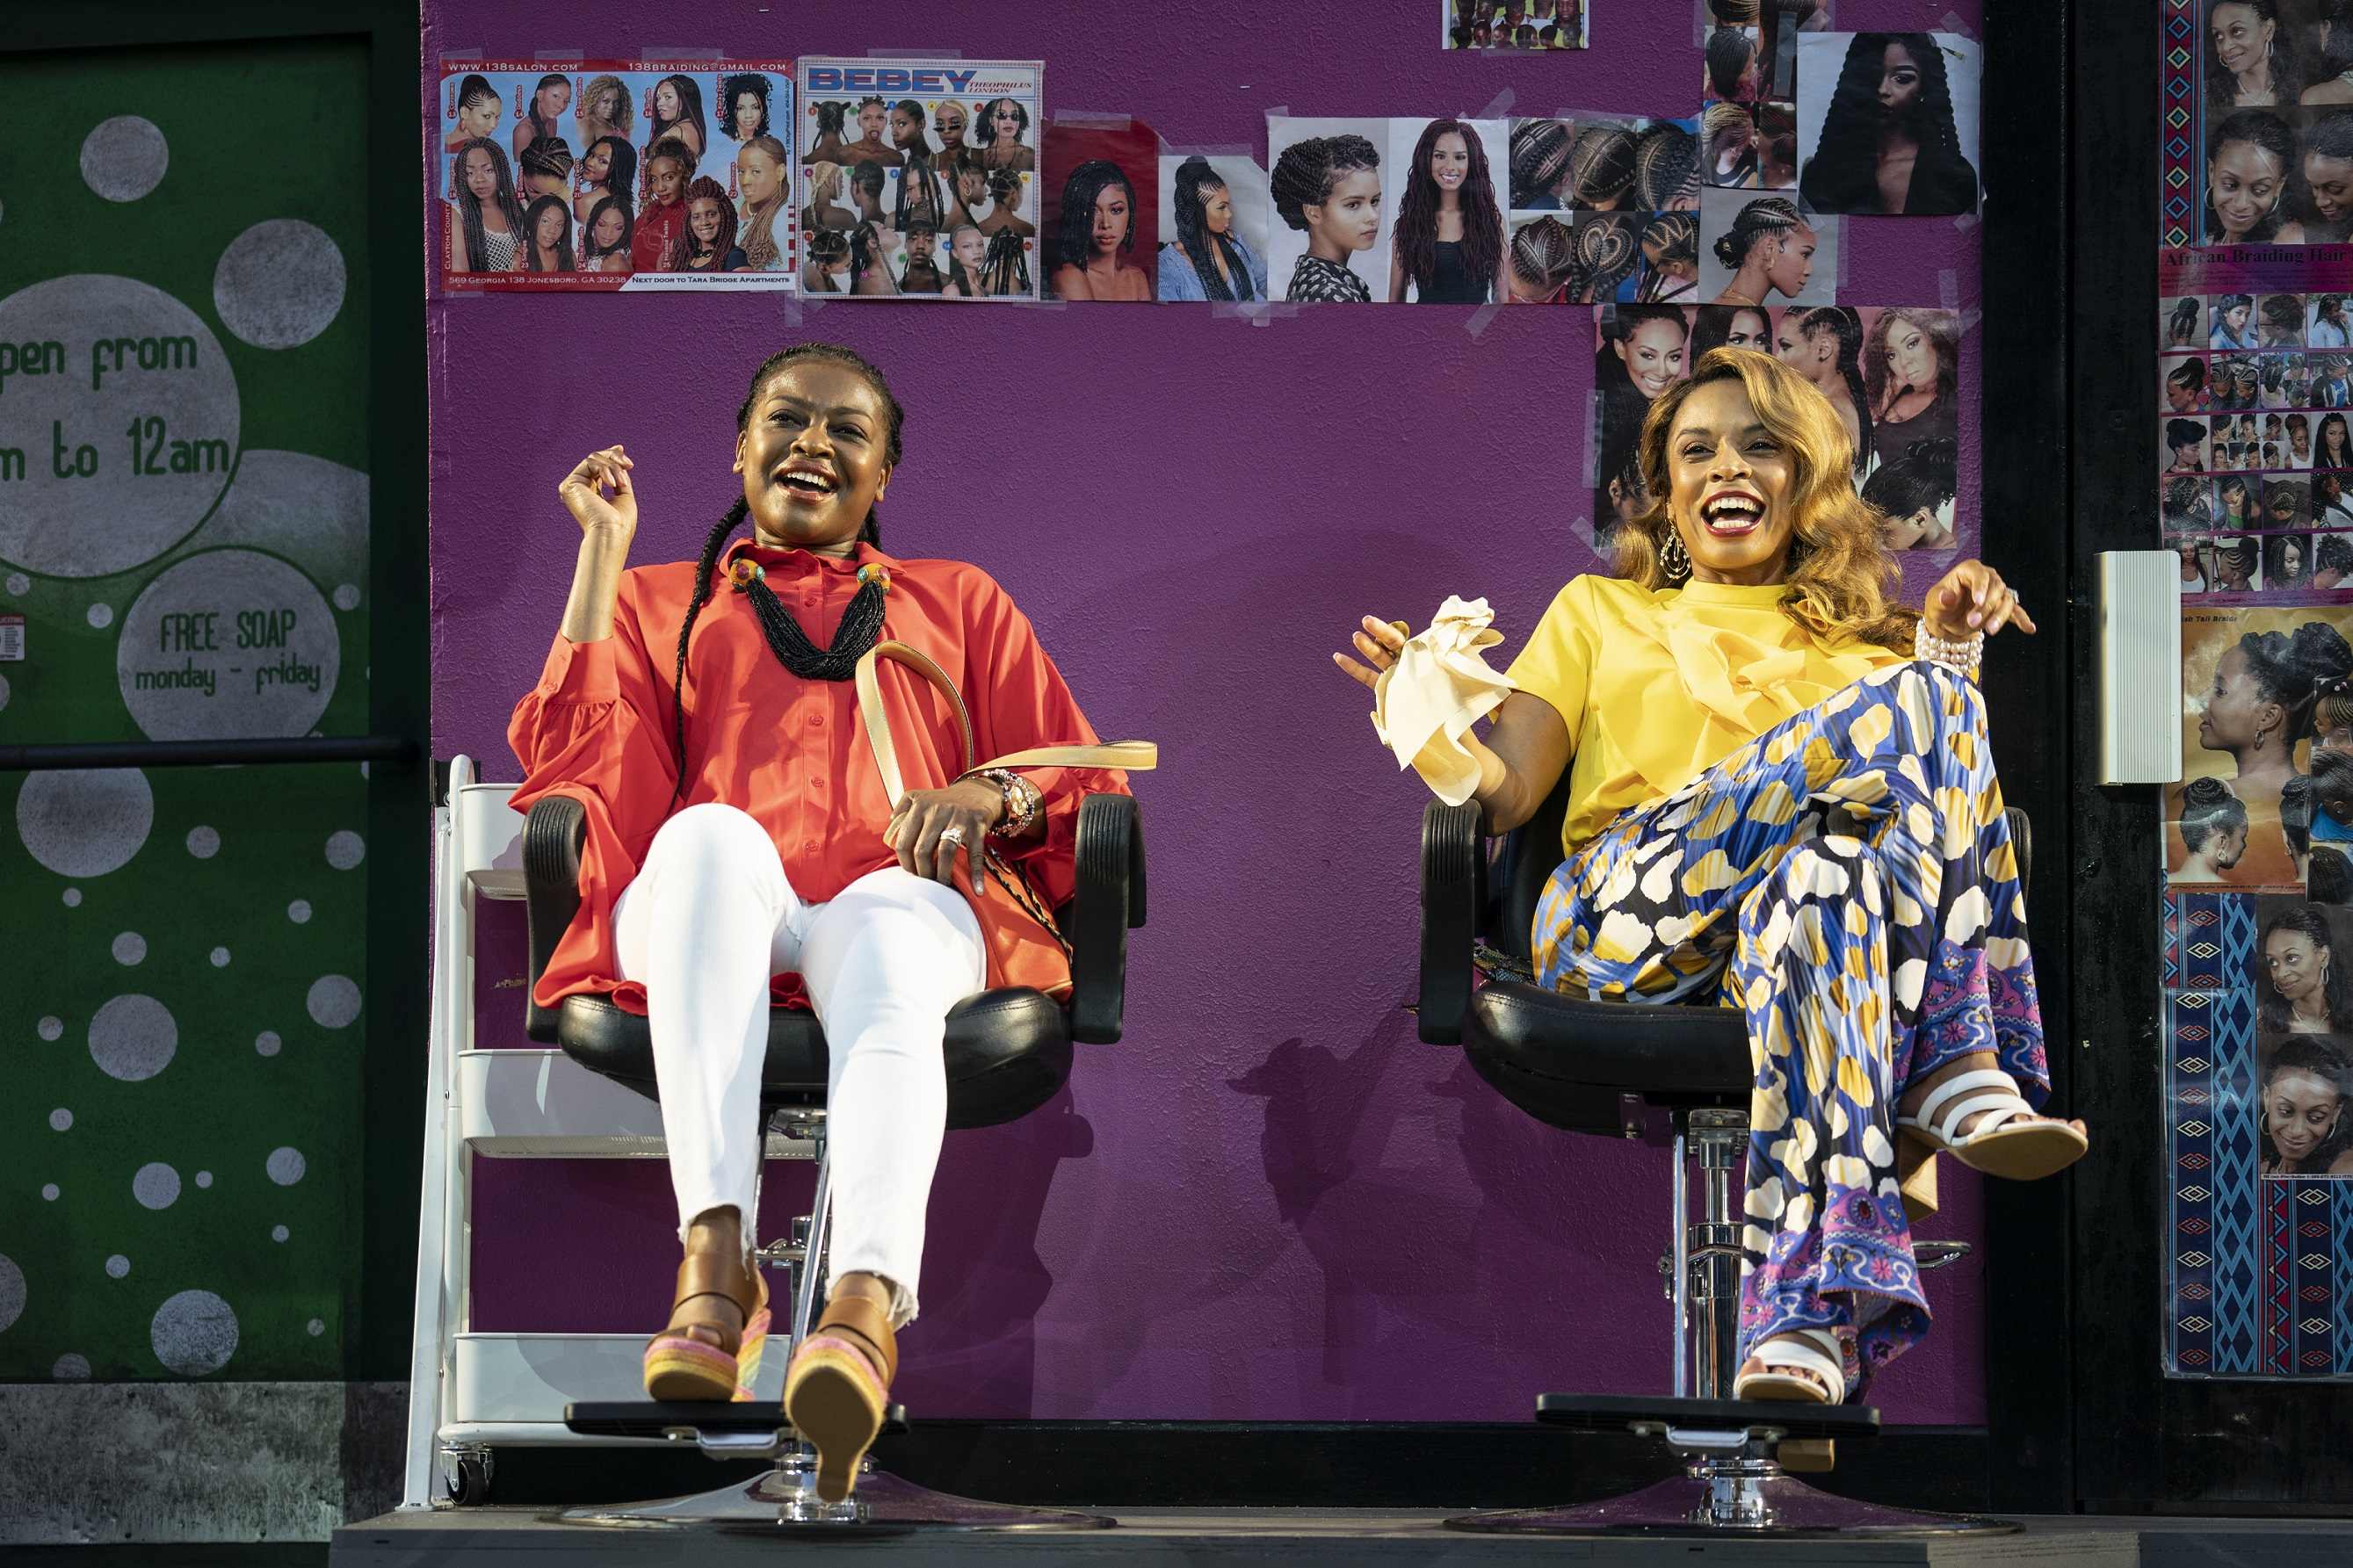 Two Black women sit, laughing, on a stage decorated to look like a beauty salon.